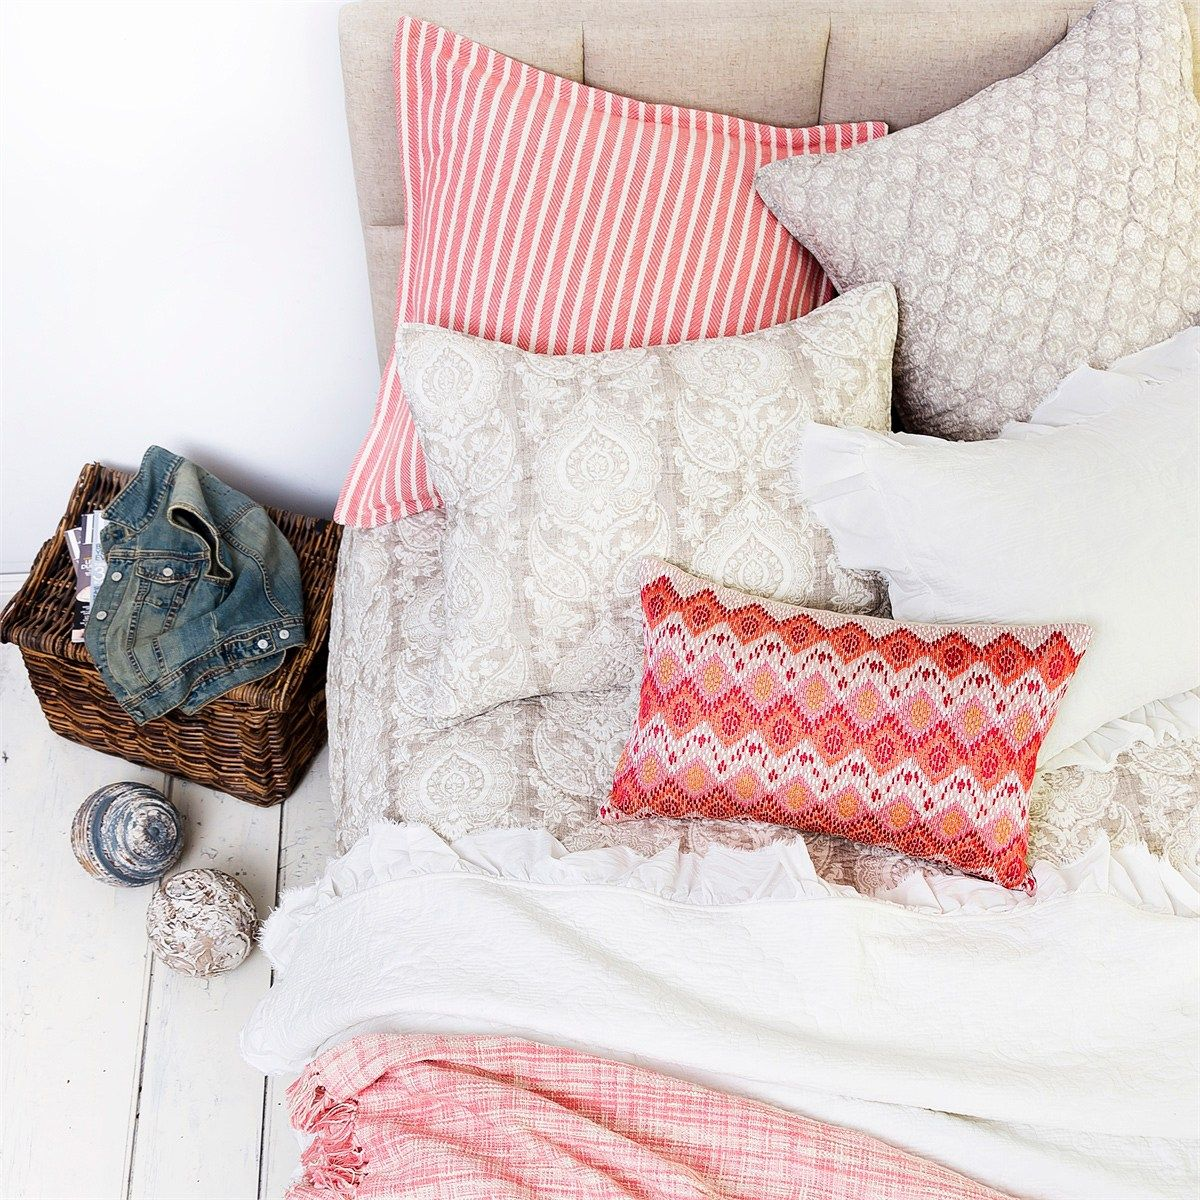 Accented Neutral Color Scheme Bedroom: Summer Bedroom Inspiration - Neutrals + Coral